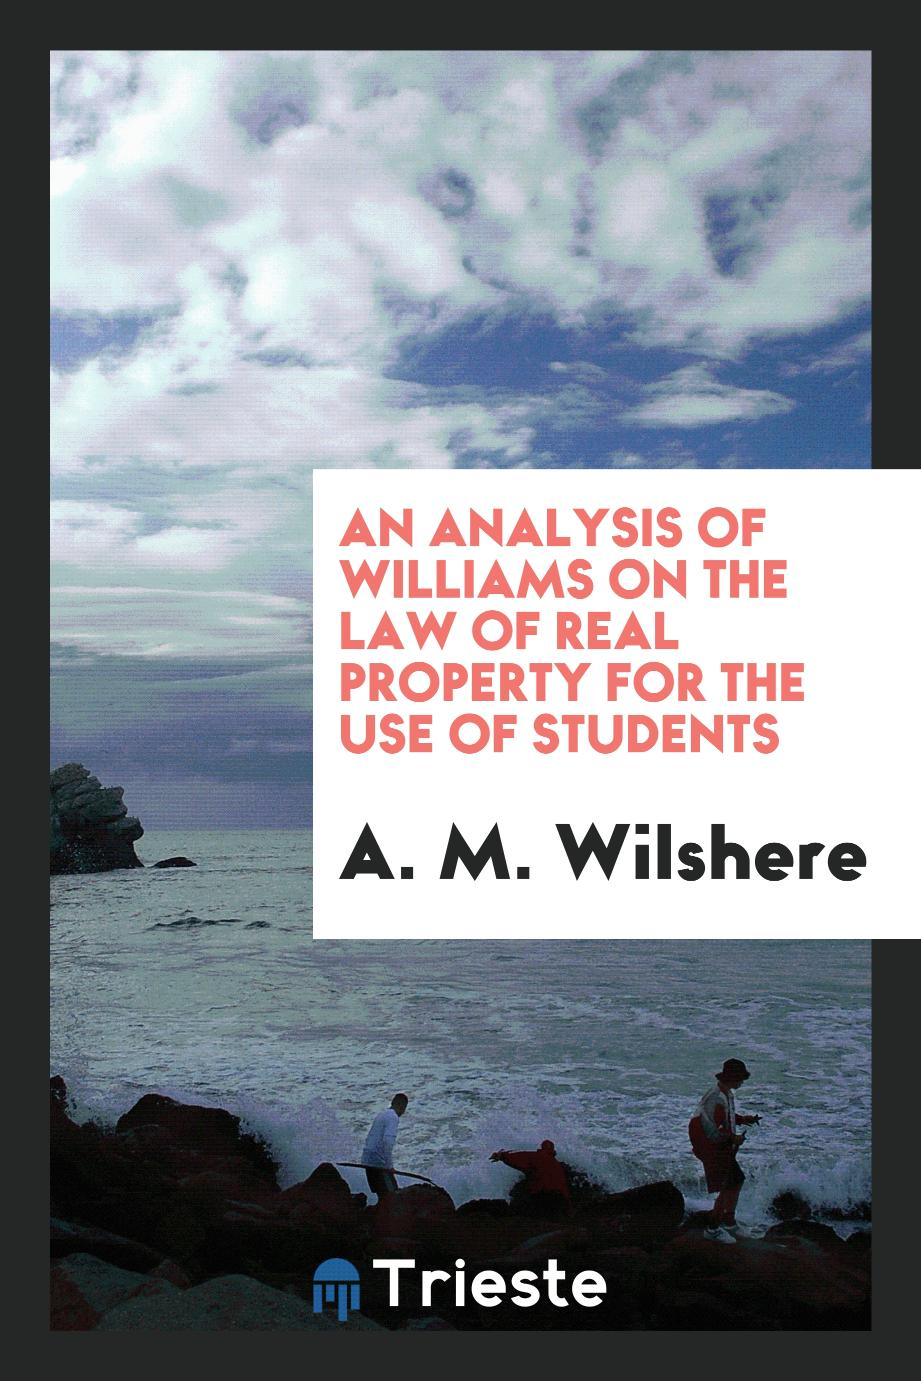 An Analysis of Williams on the Law of Real Property for the Use of Students